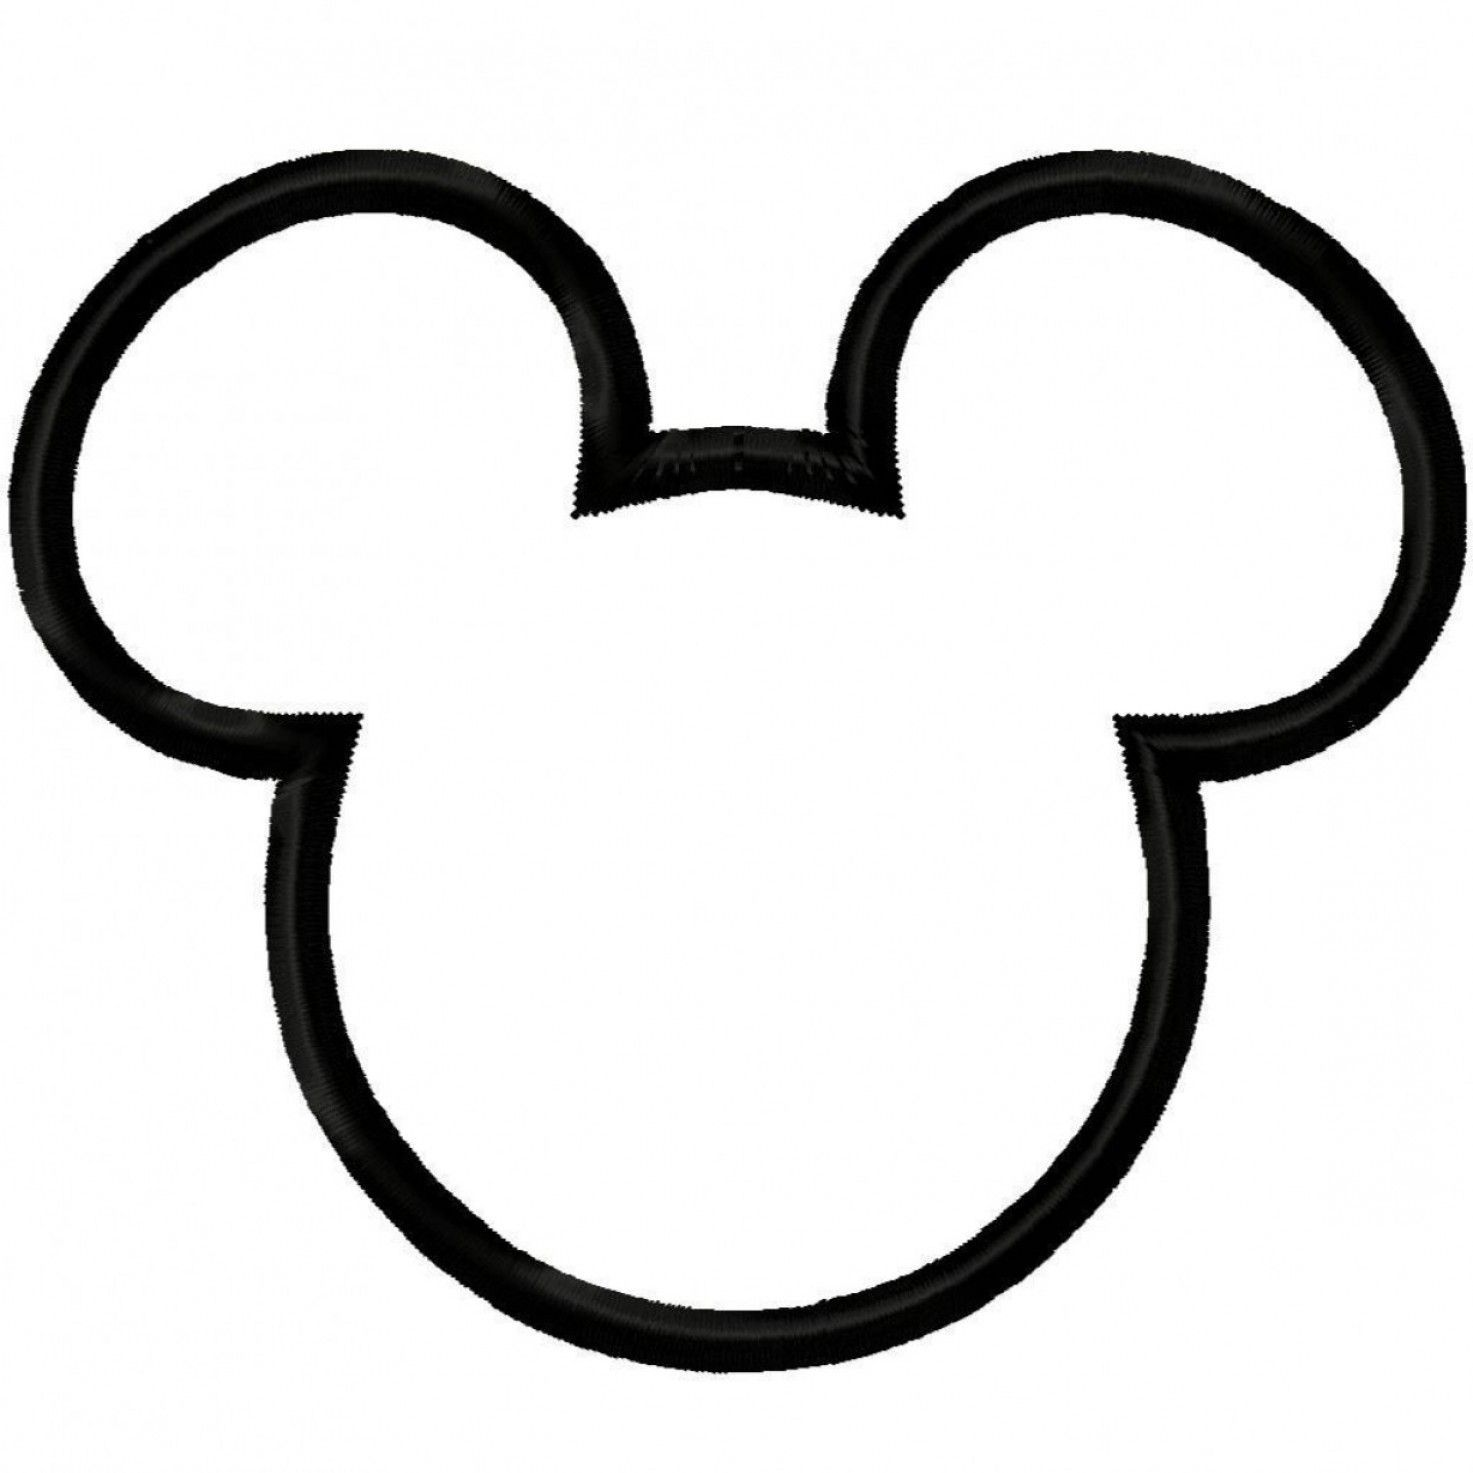 Mickey Mouse Ears Coloring Page Coloring Pages Allow Kids To Accompany Their Favorite Charac Mickey Mouse Silhouette Mickey Mouse Template Mickey Mouse Head